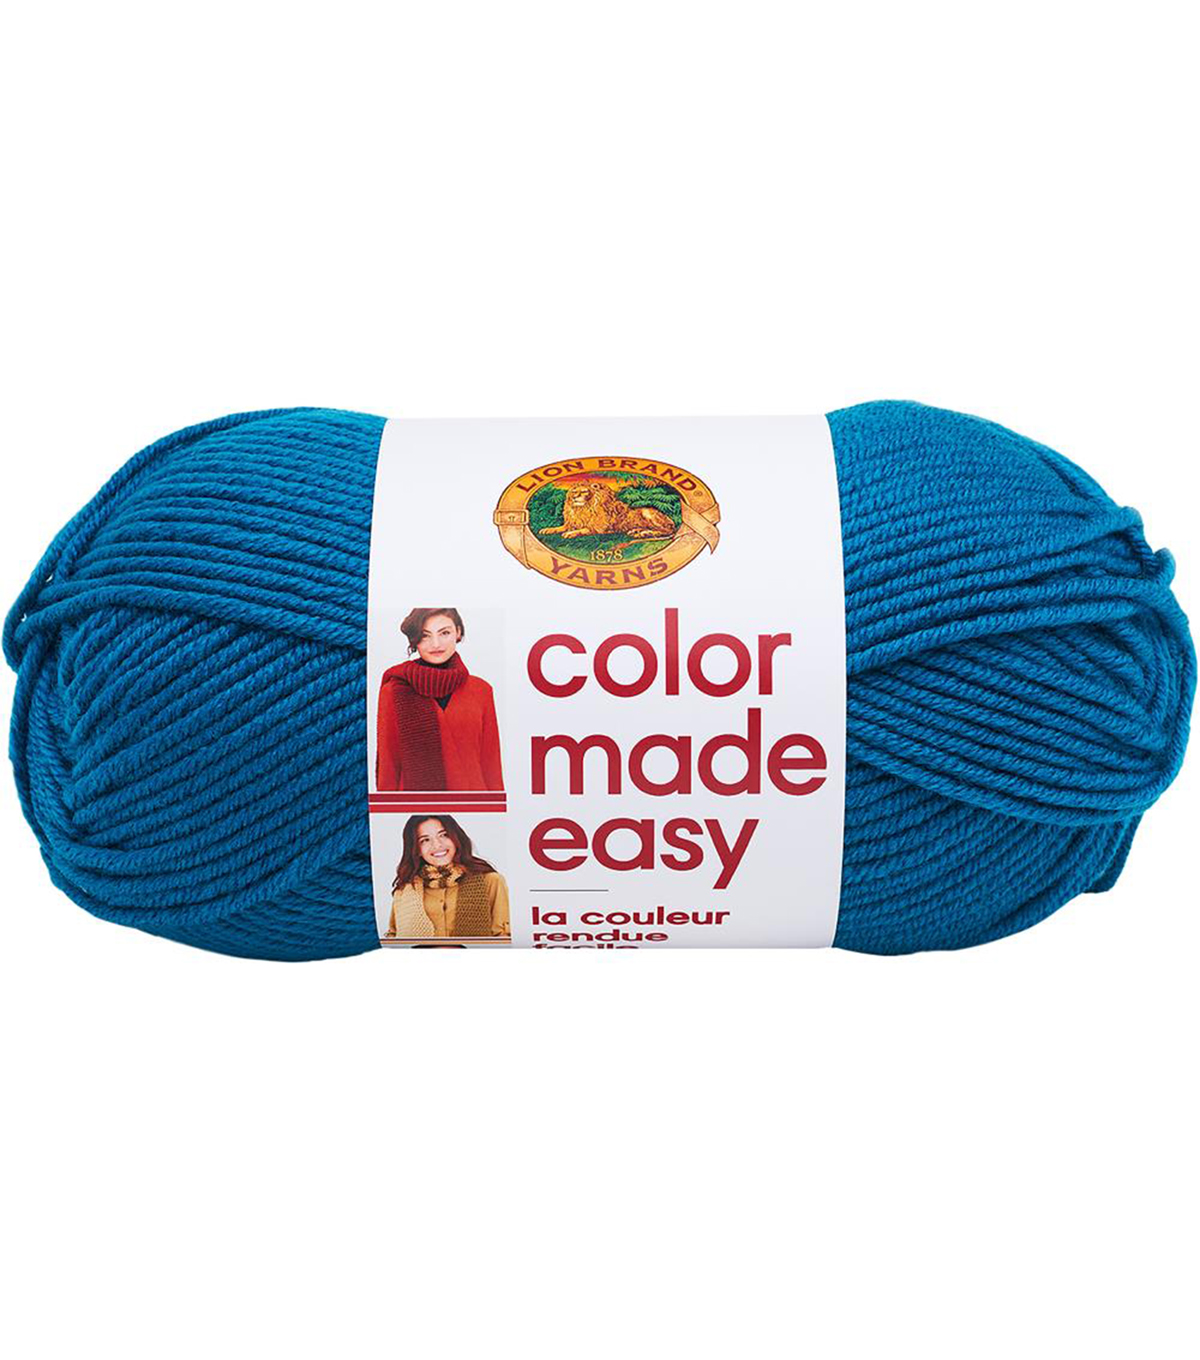 Lion Brand Yarn Color Made Easy Yarn 3pk